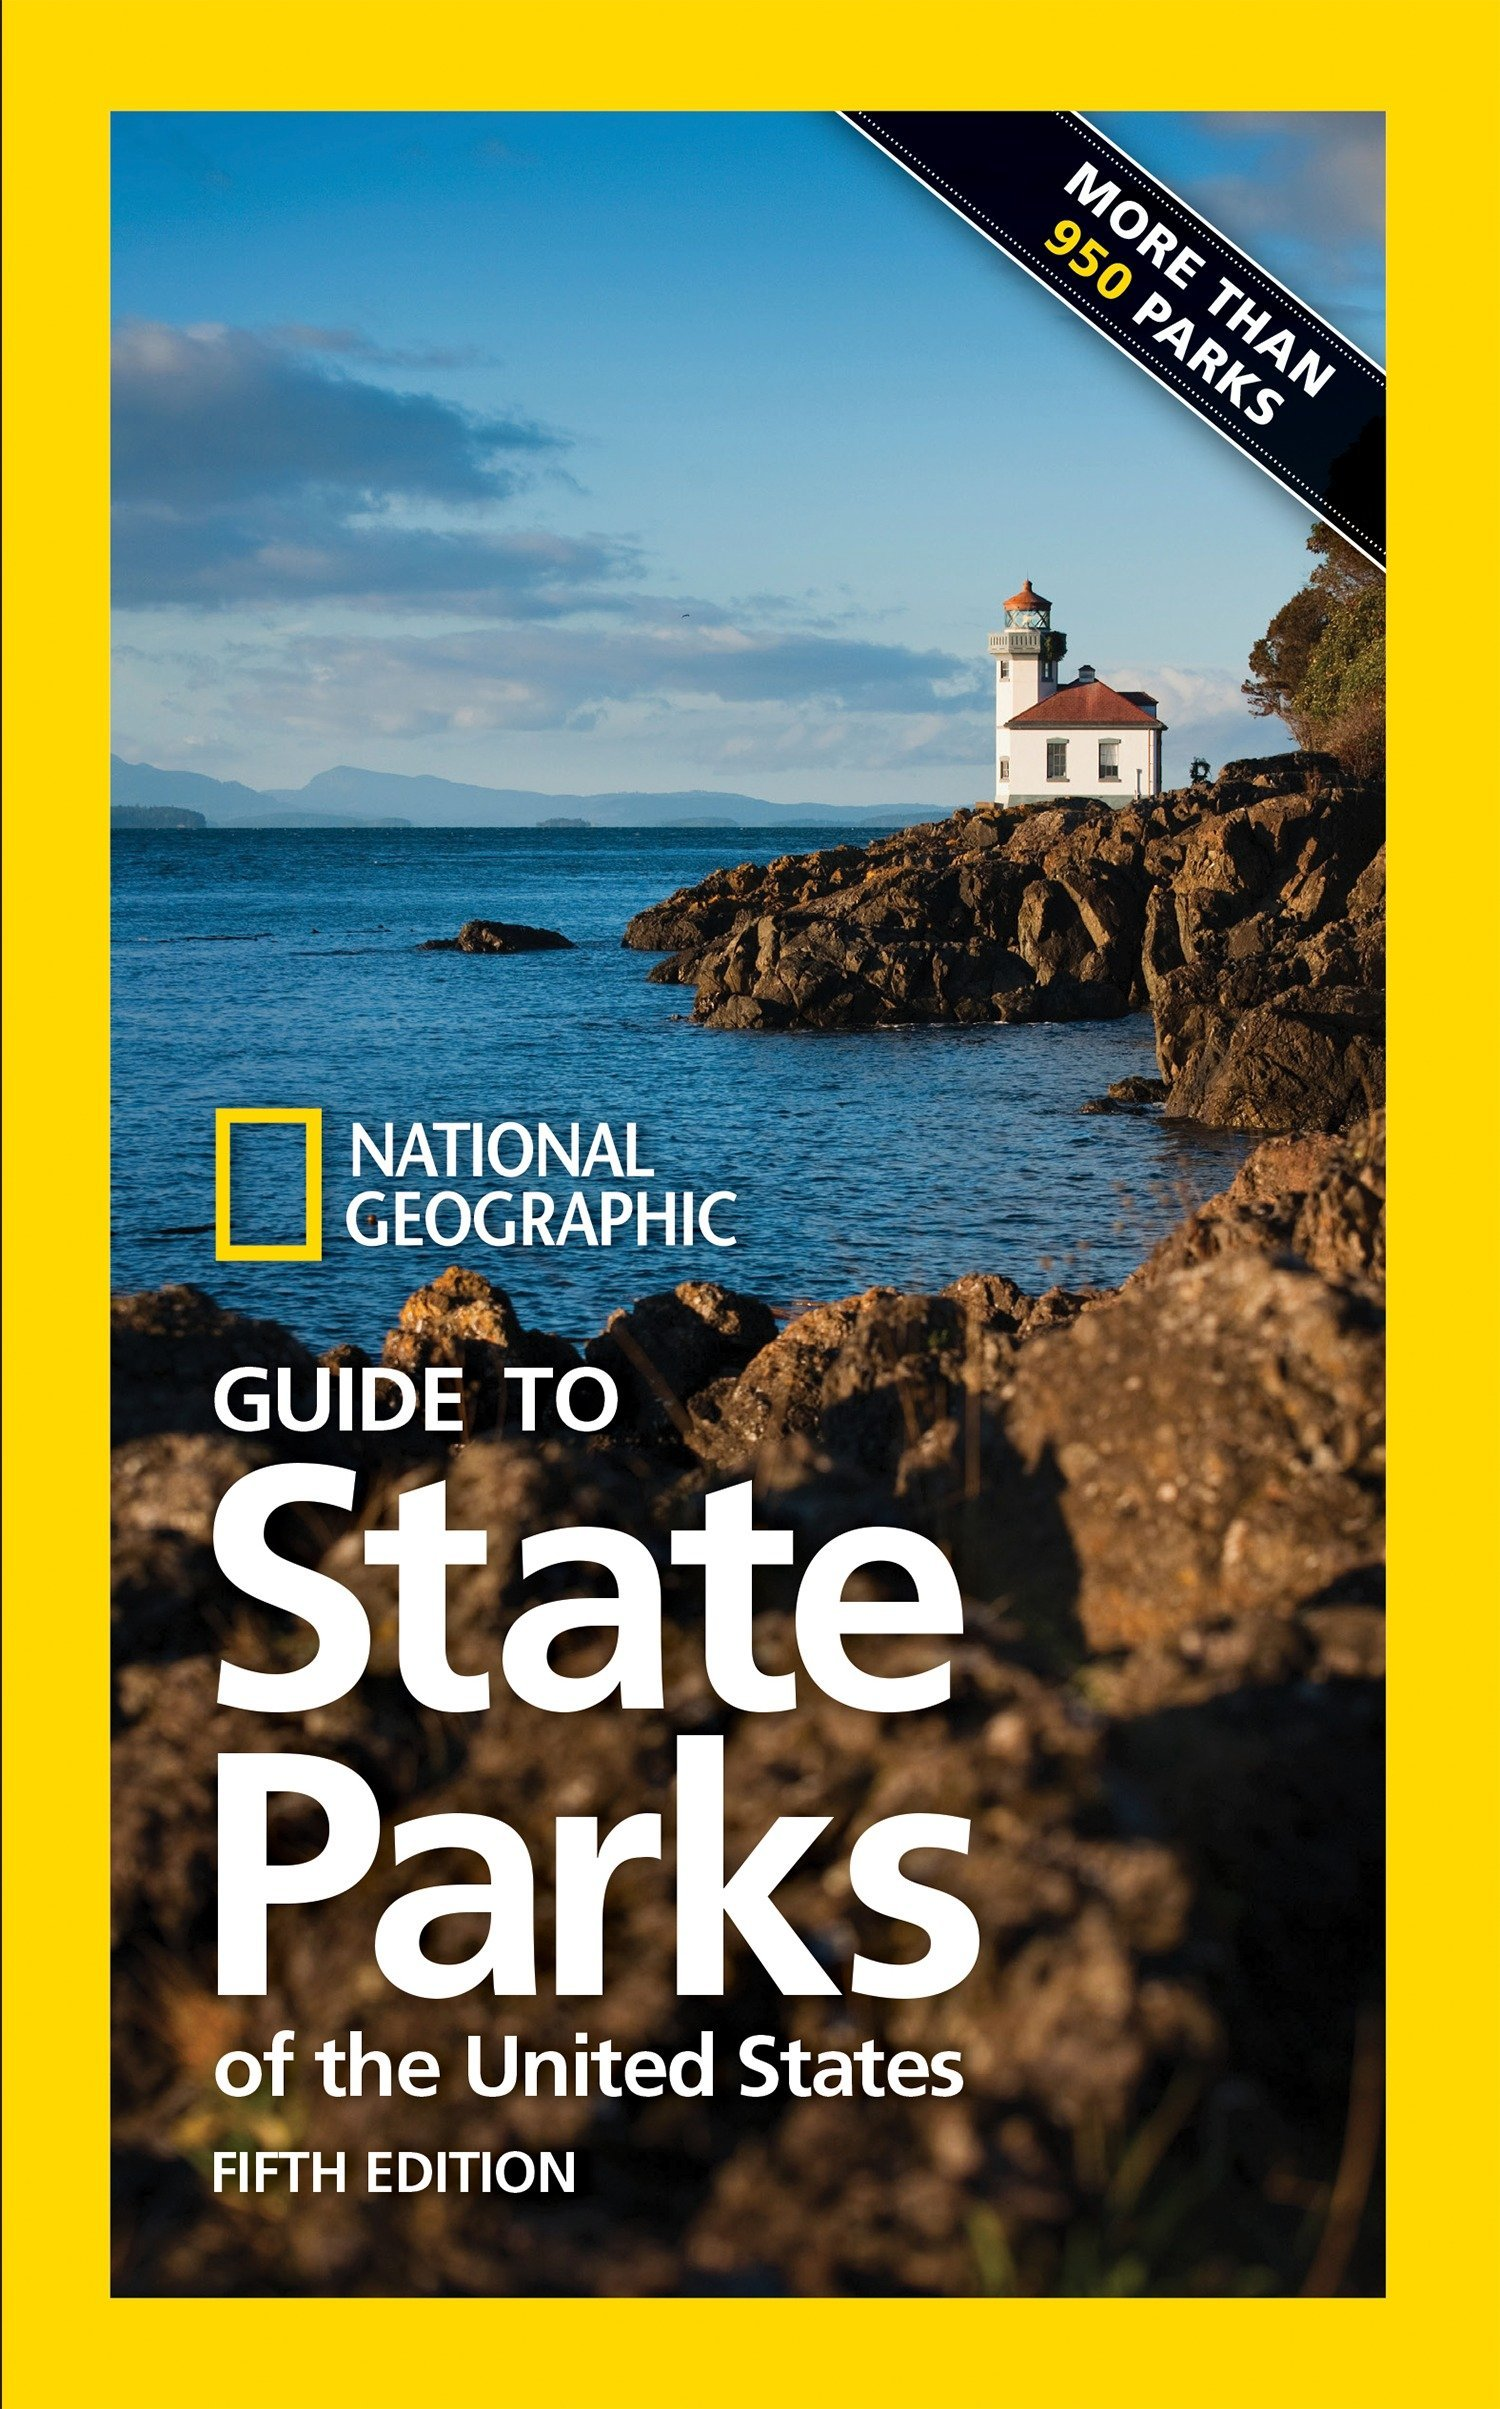 National Geographic Guide To State Parks Of The United States 5th Edition 9781426218859 Amazon Books